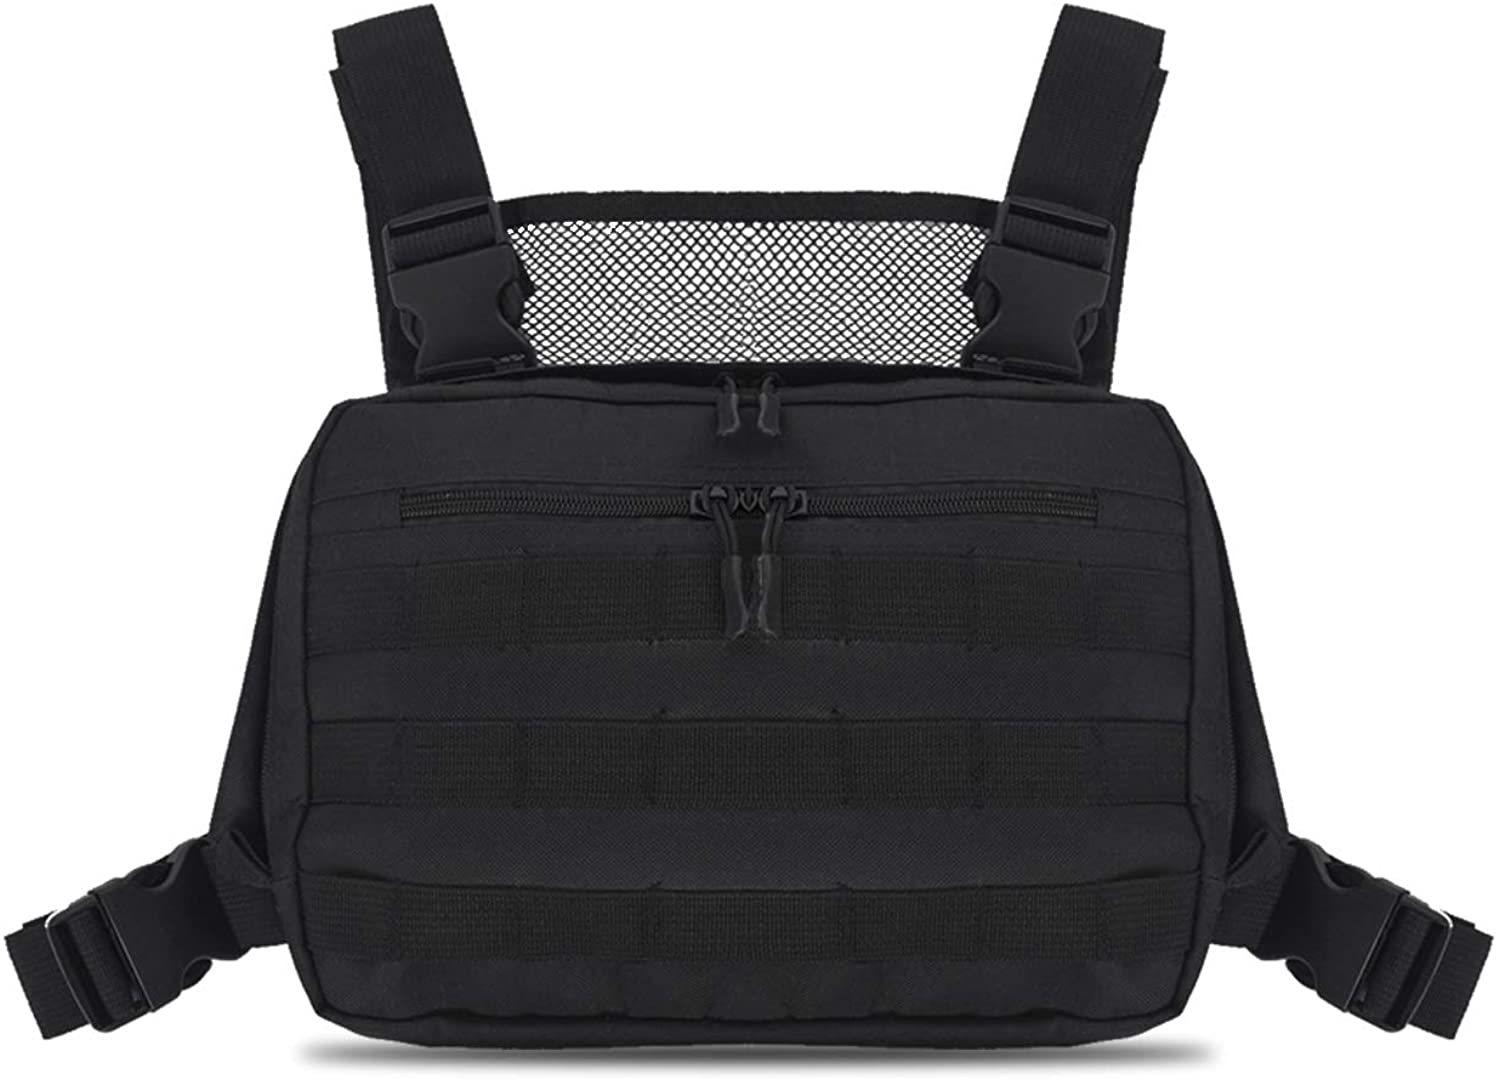 Chest Bag Tool Pouch, Multi-Function Vest Pouch Lightweight Front Chest Pack for Hiking, Running, Cycling, Climbing, Travelling